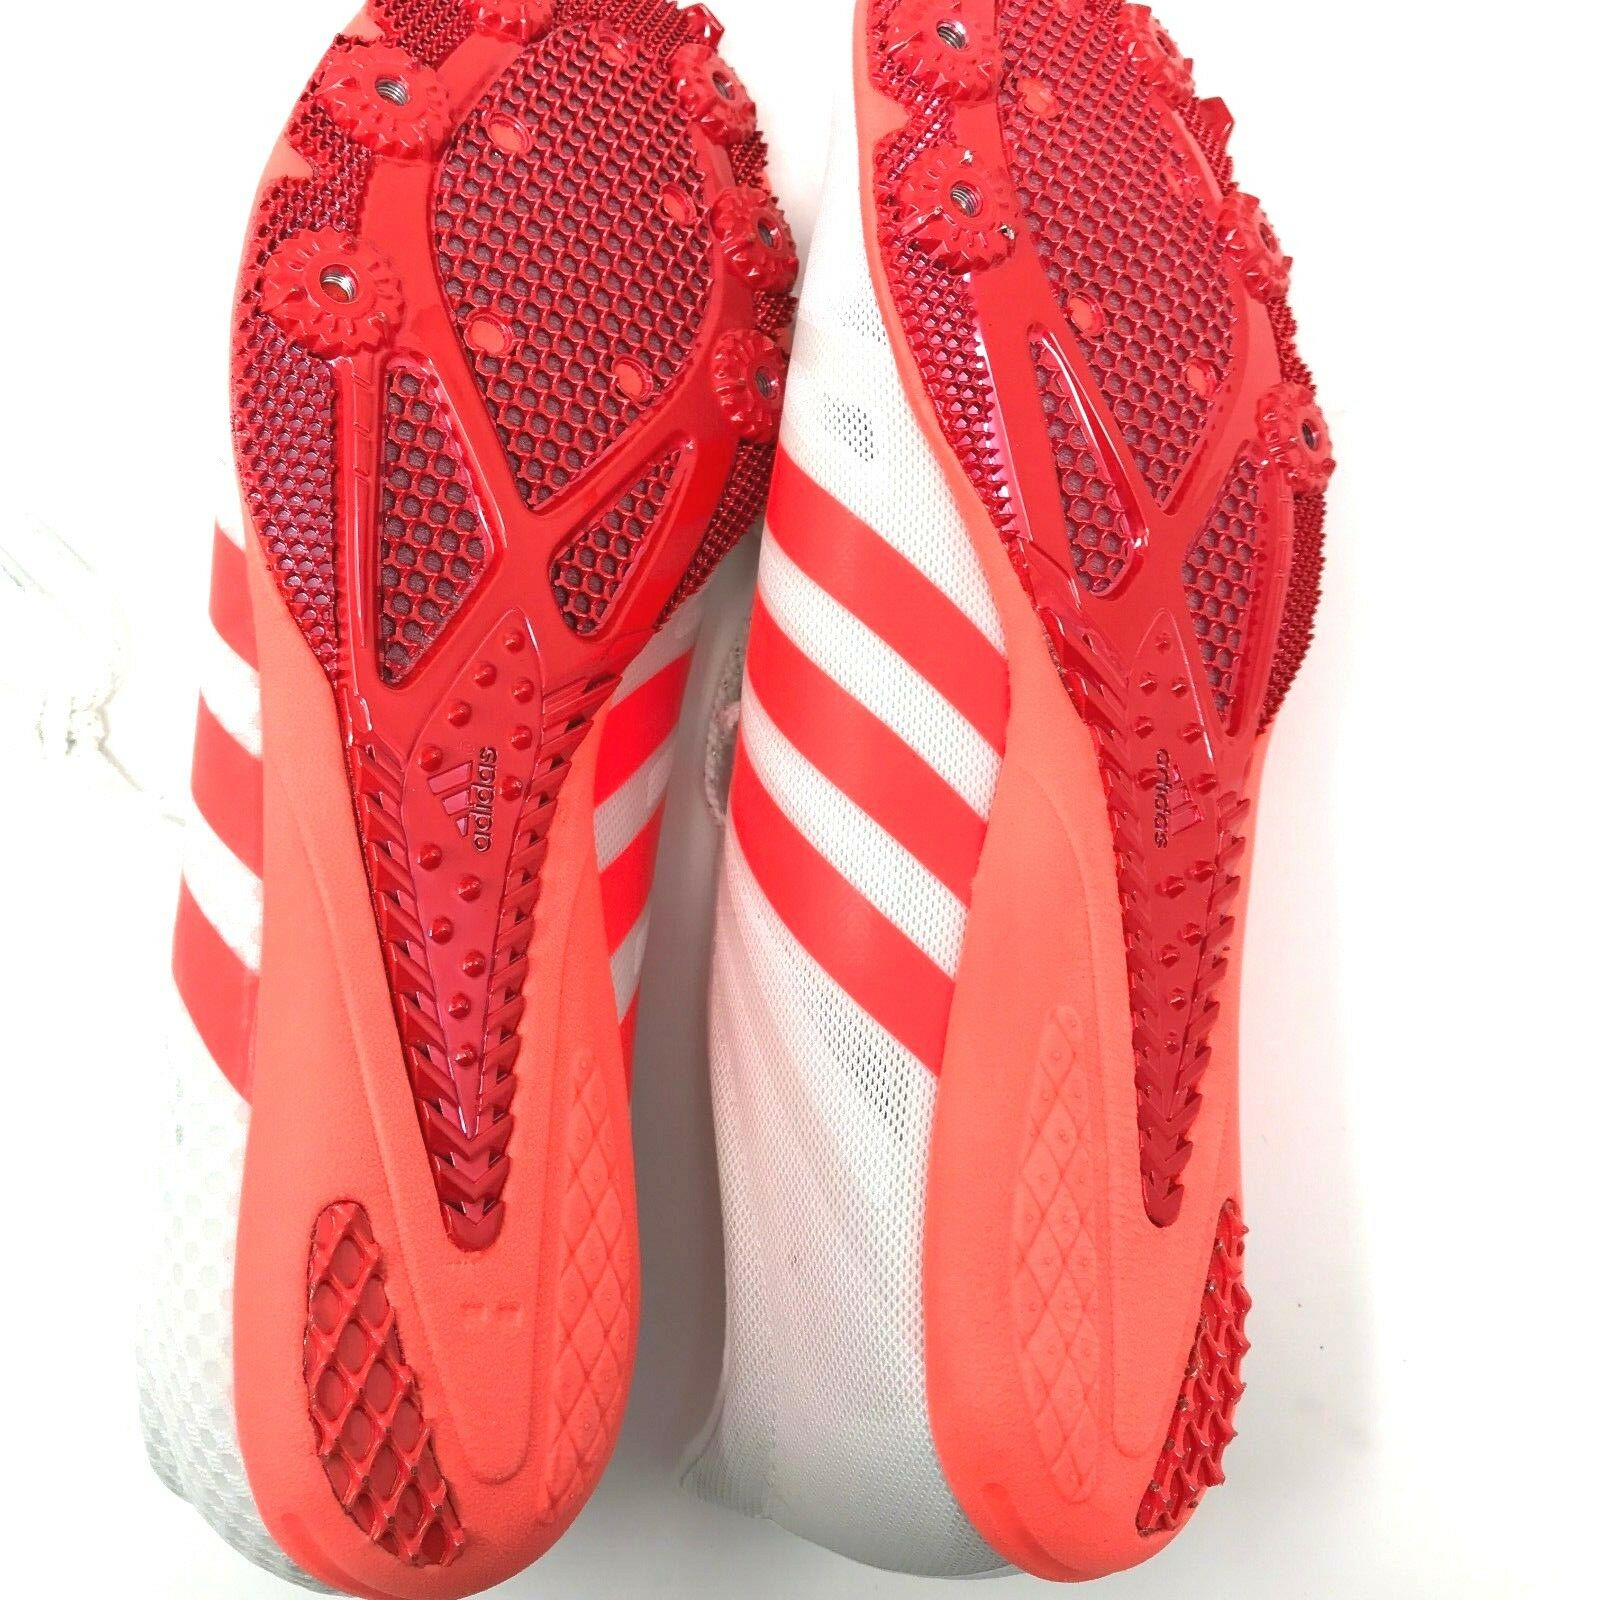 Adidas Women's Adizero Ambition Ambition Ambition 3 W Track shoes BA8438 SZ 11 White Neon orange 6ee360